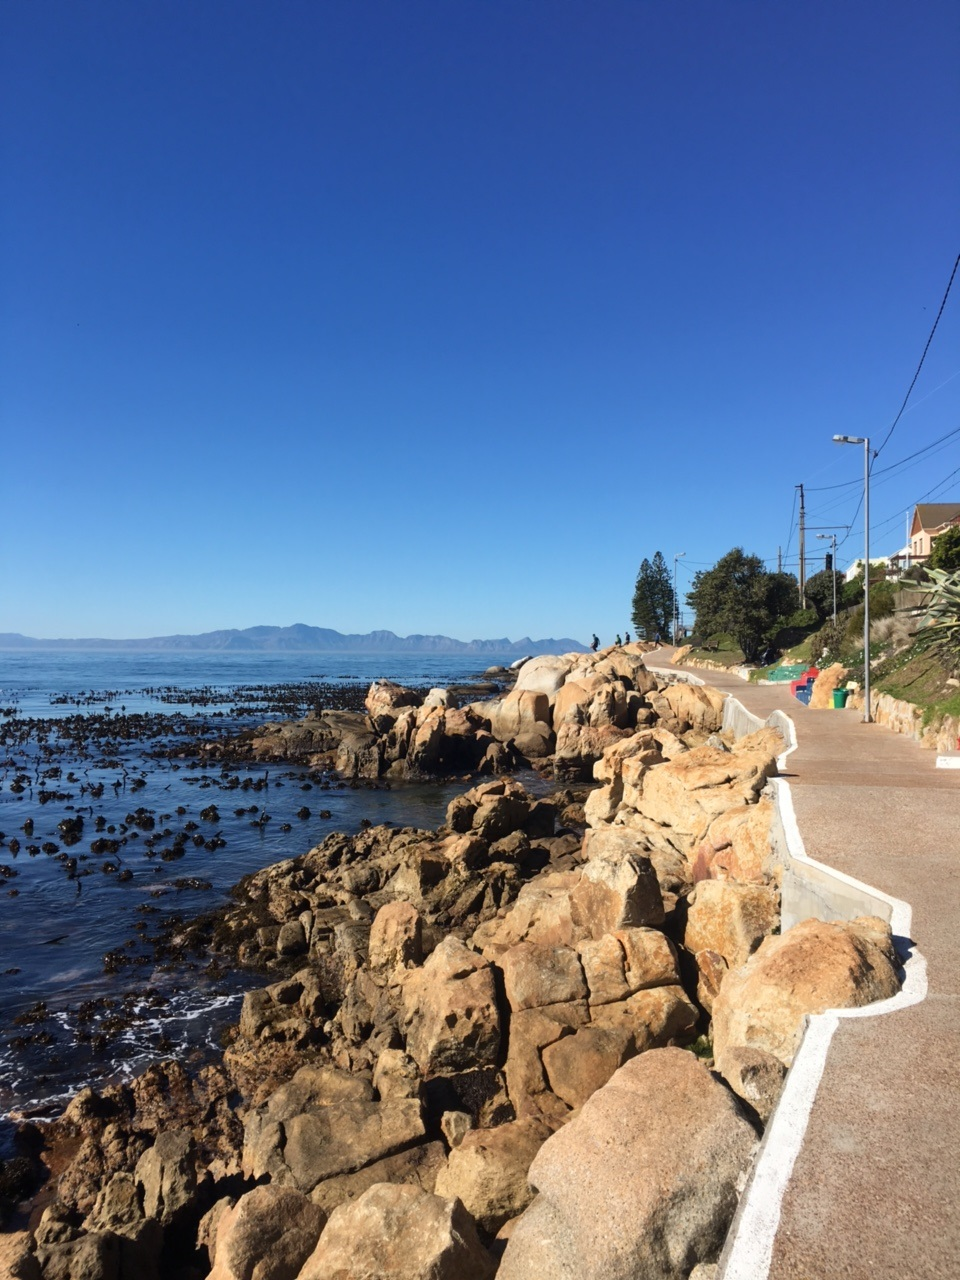 Jagers Walk Fish Hoek1